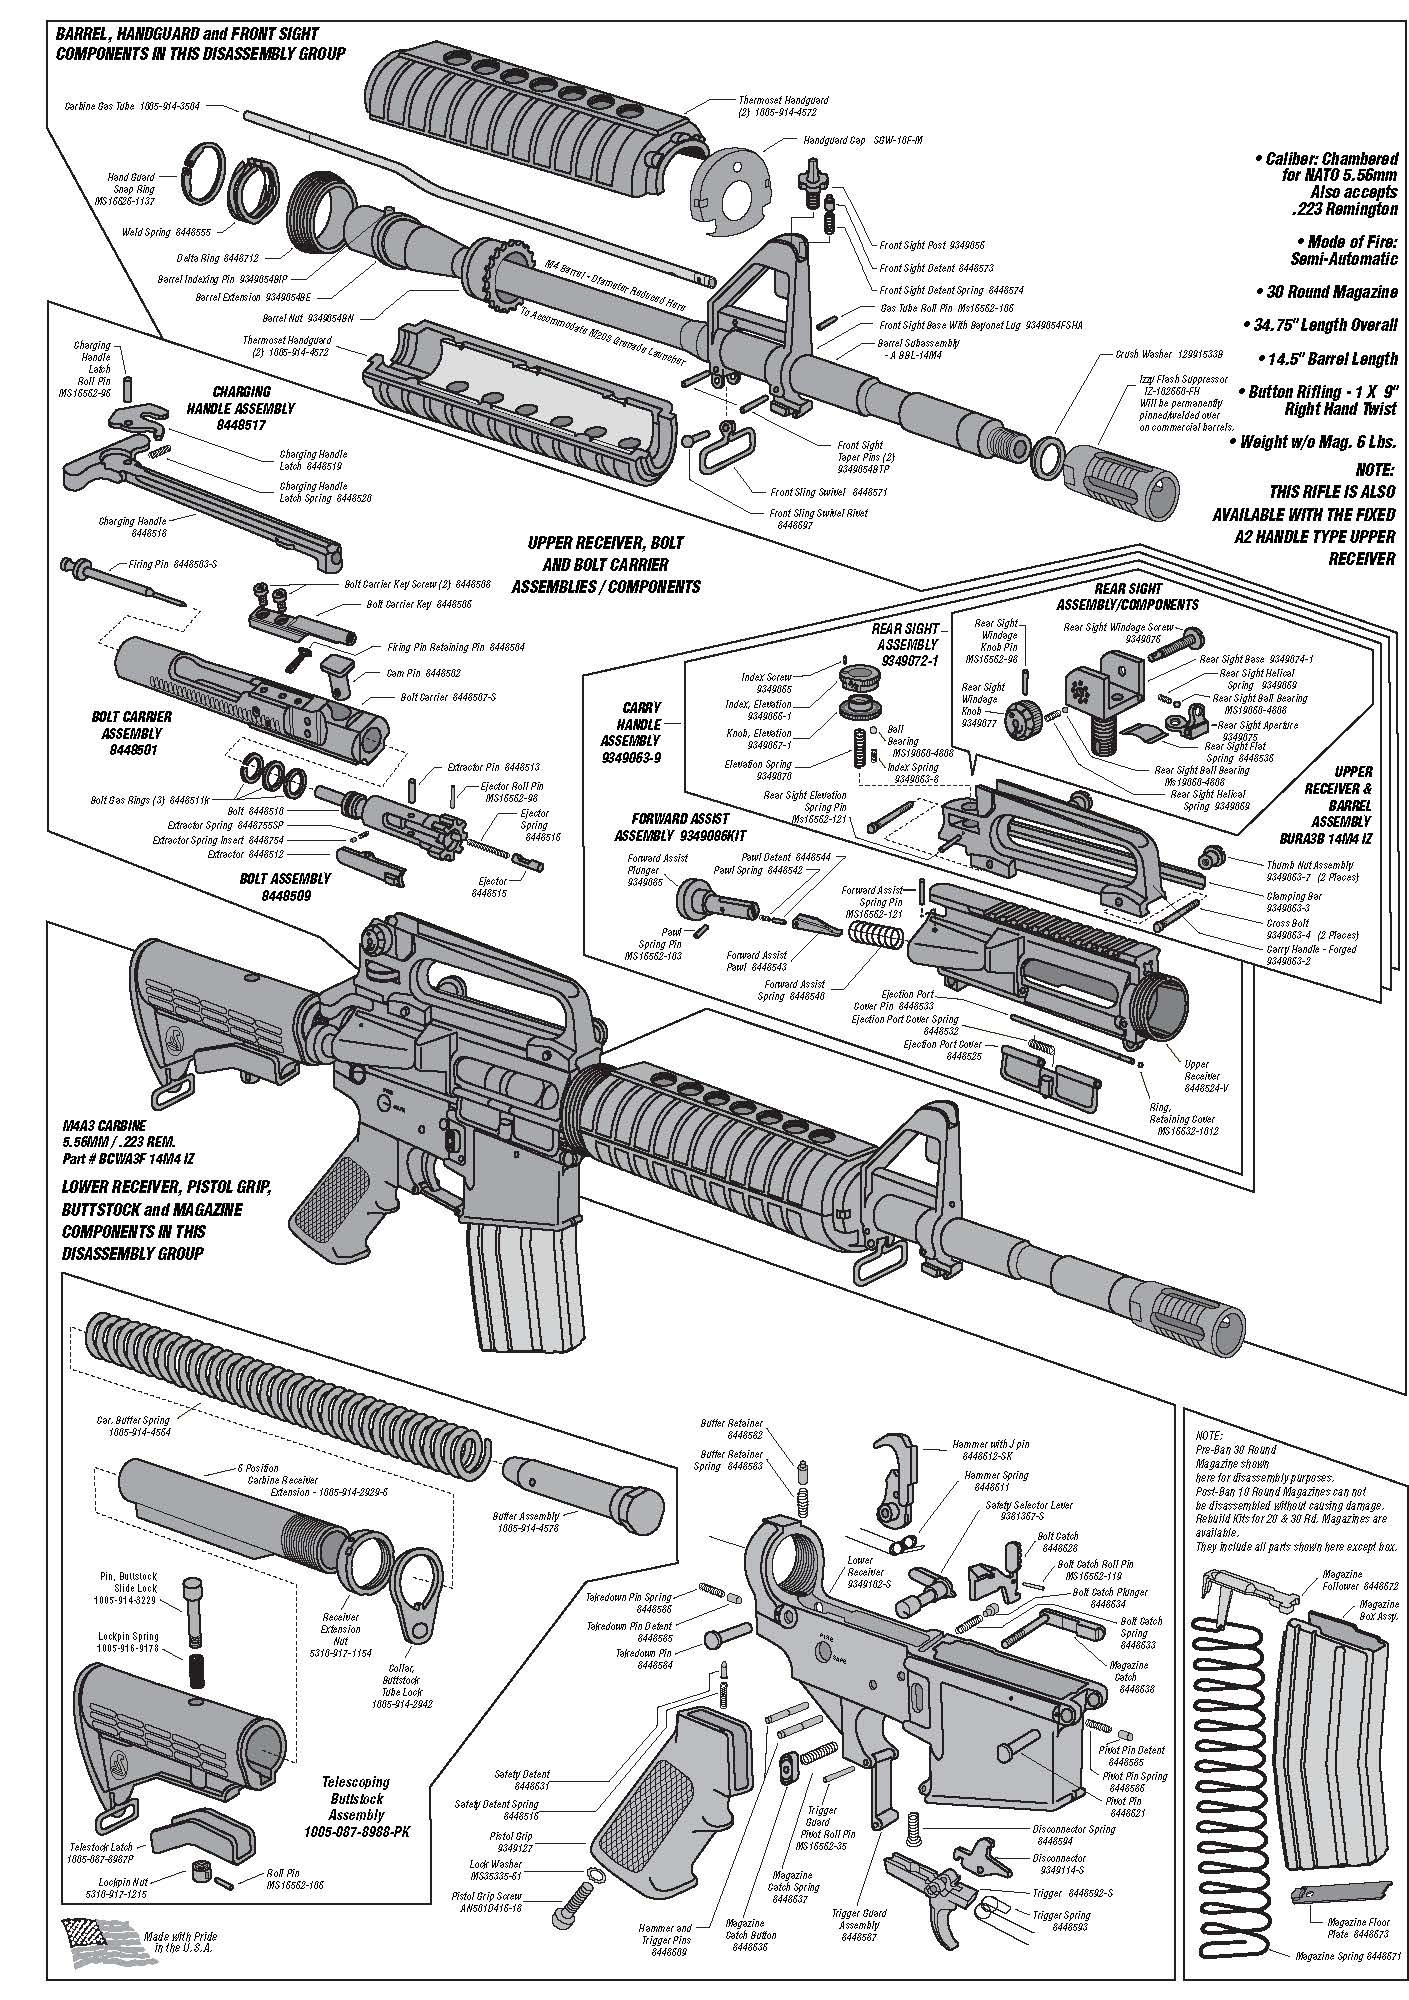 Pin on Technical Drawings & Cutaways